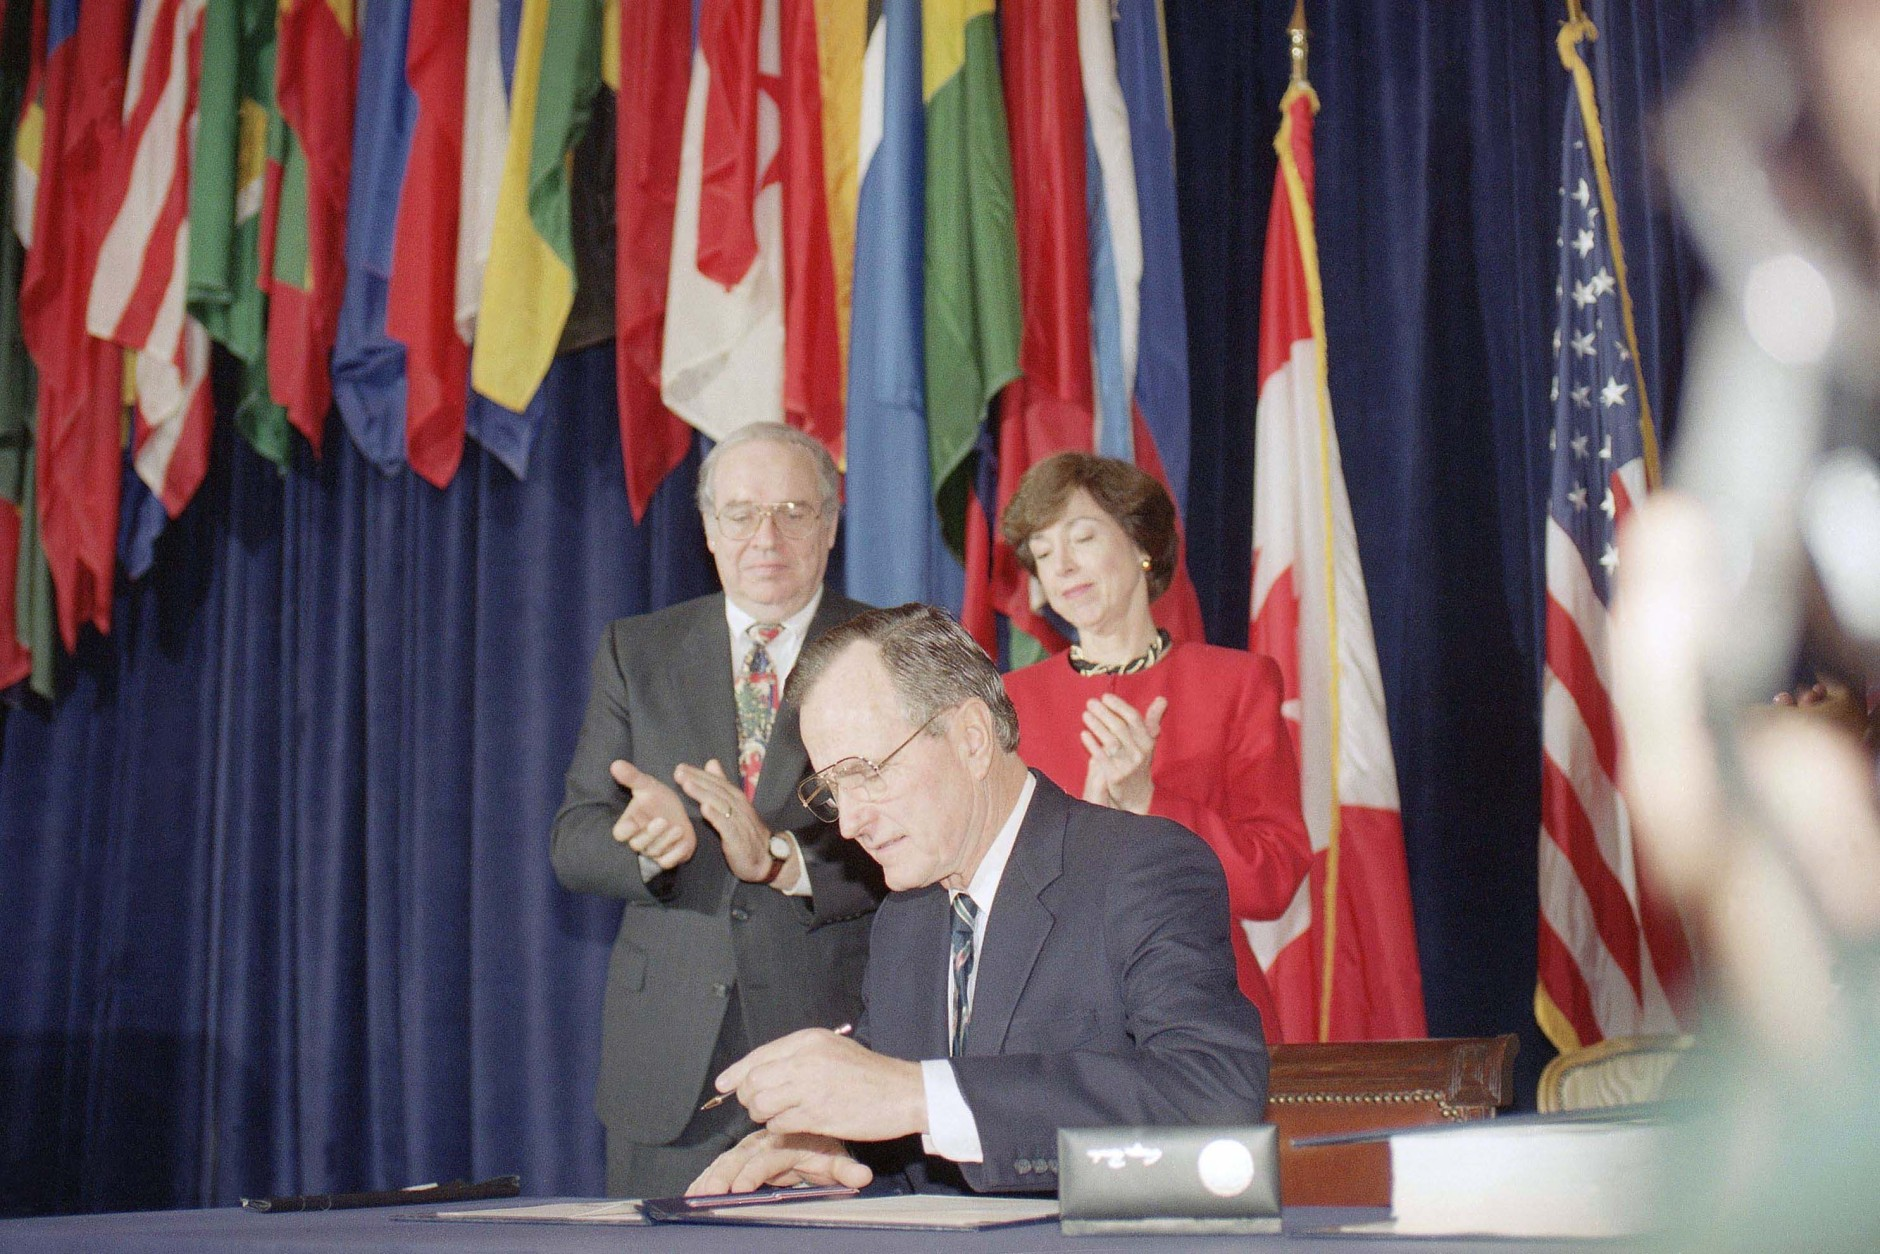 Pres. George H. W. Bush, center, signs the North American Free Trade Agreement during a ceremony at the Organization of American States headquarters, Thursday, Dec. 17, 1992, Washington, D.C. Canadian Amb. Derek Burney and U.S. Trade Representative Carla Hills applaud during the signing. The president predicted an explosion of growth throughout North America as he signed the agreement. (AP Photo/Dennis Cook)